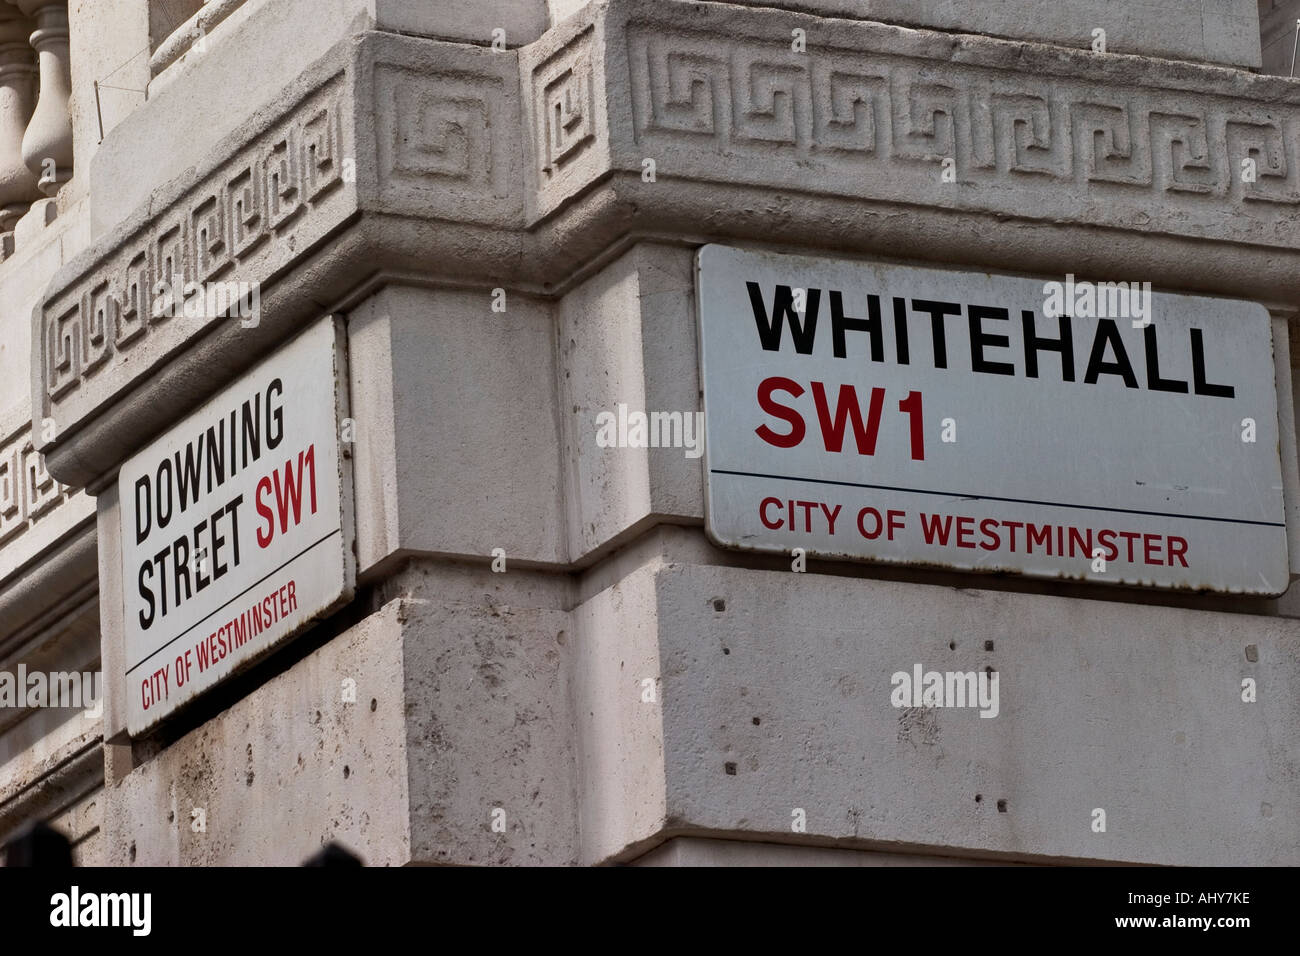 Whitehall and Downing Street signs London - Stock Image